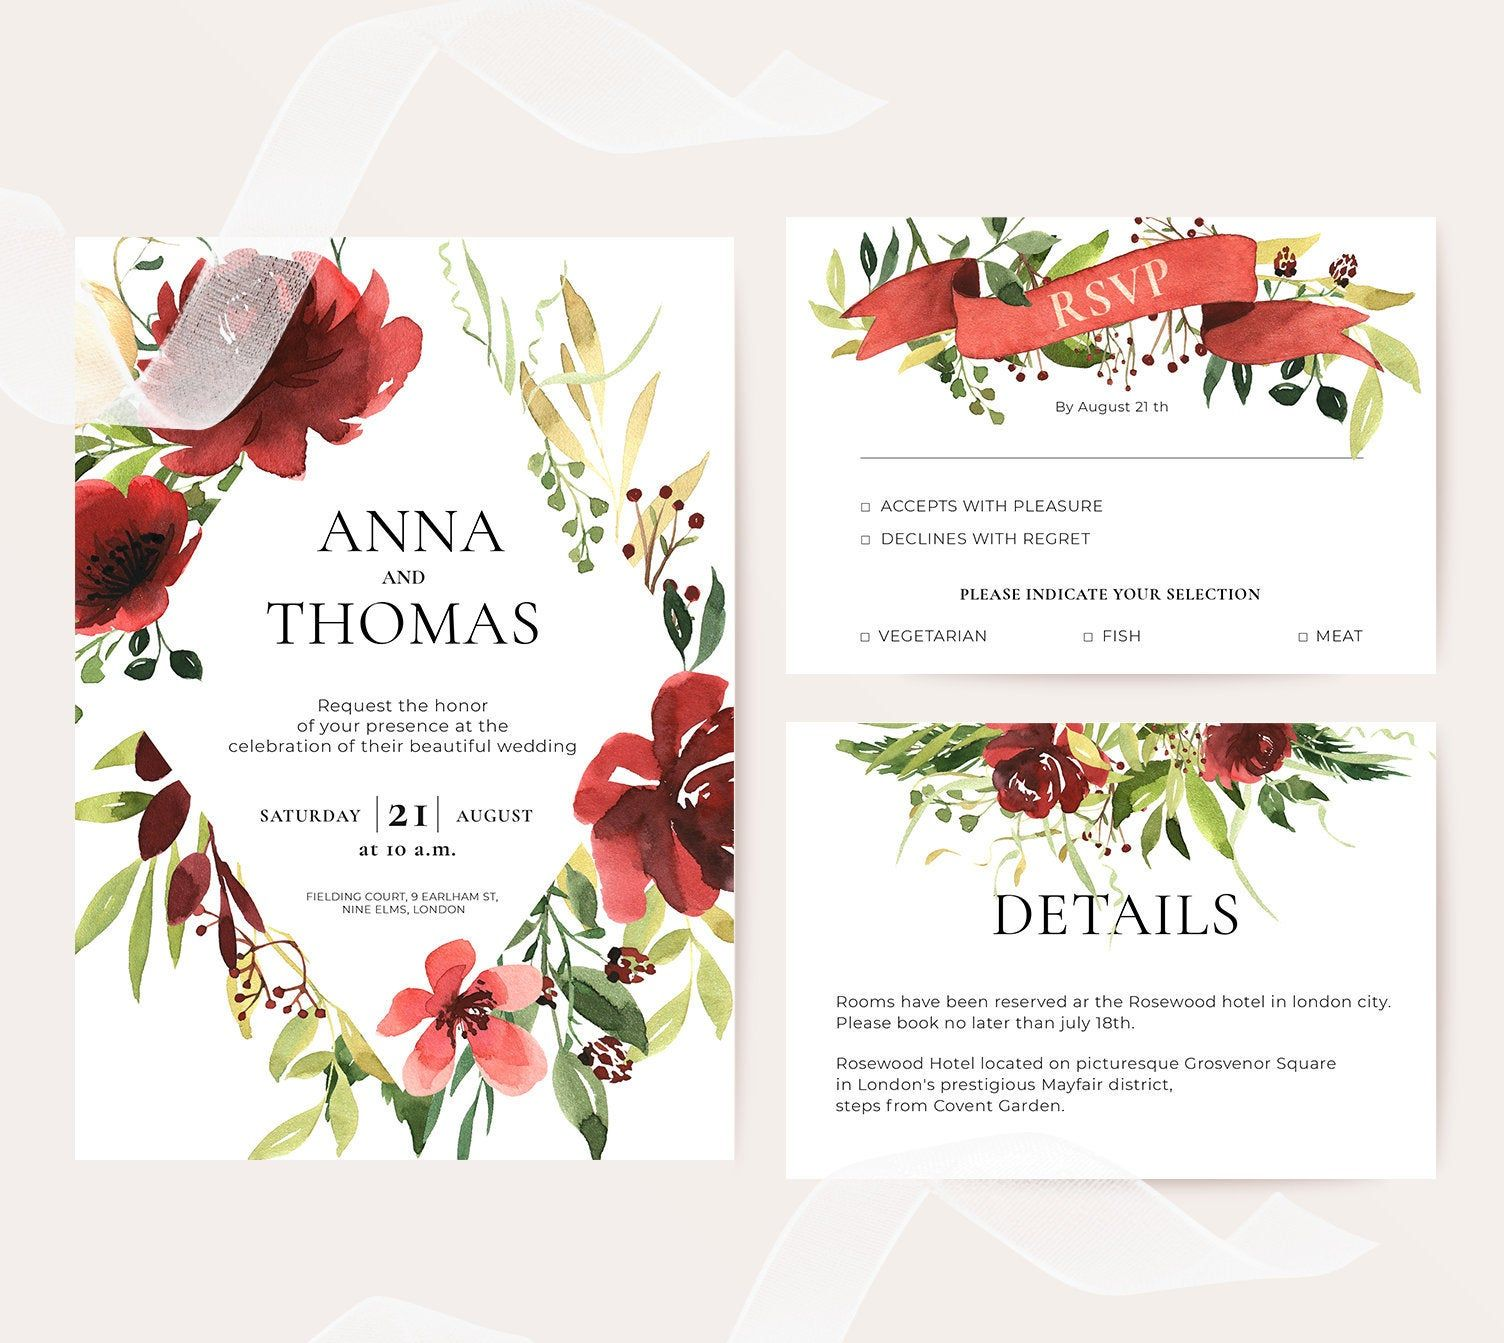 Burgundy wedding invitation Template Suite, Red watercolor